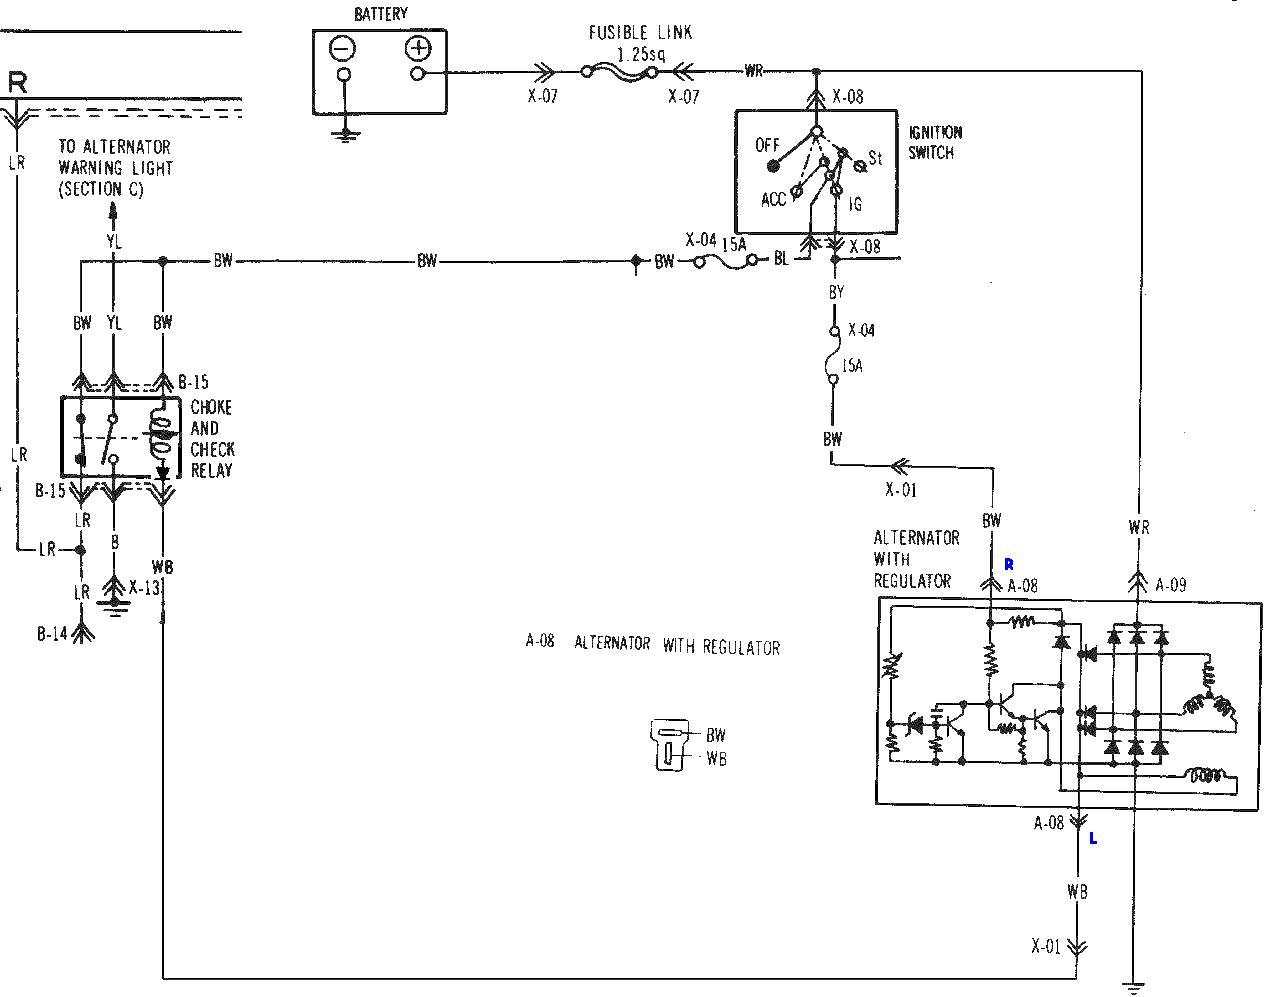 1987 mazda b2000 alternator wiring diagrams